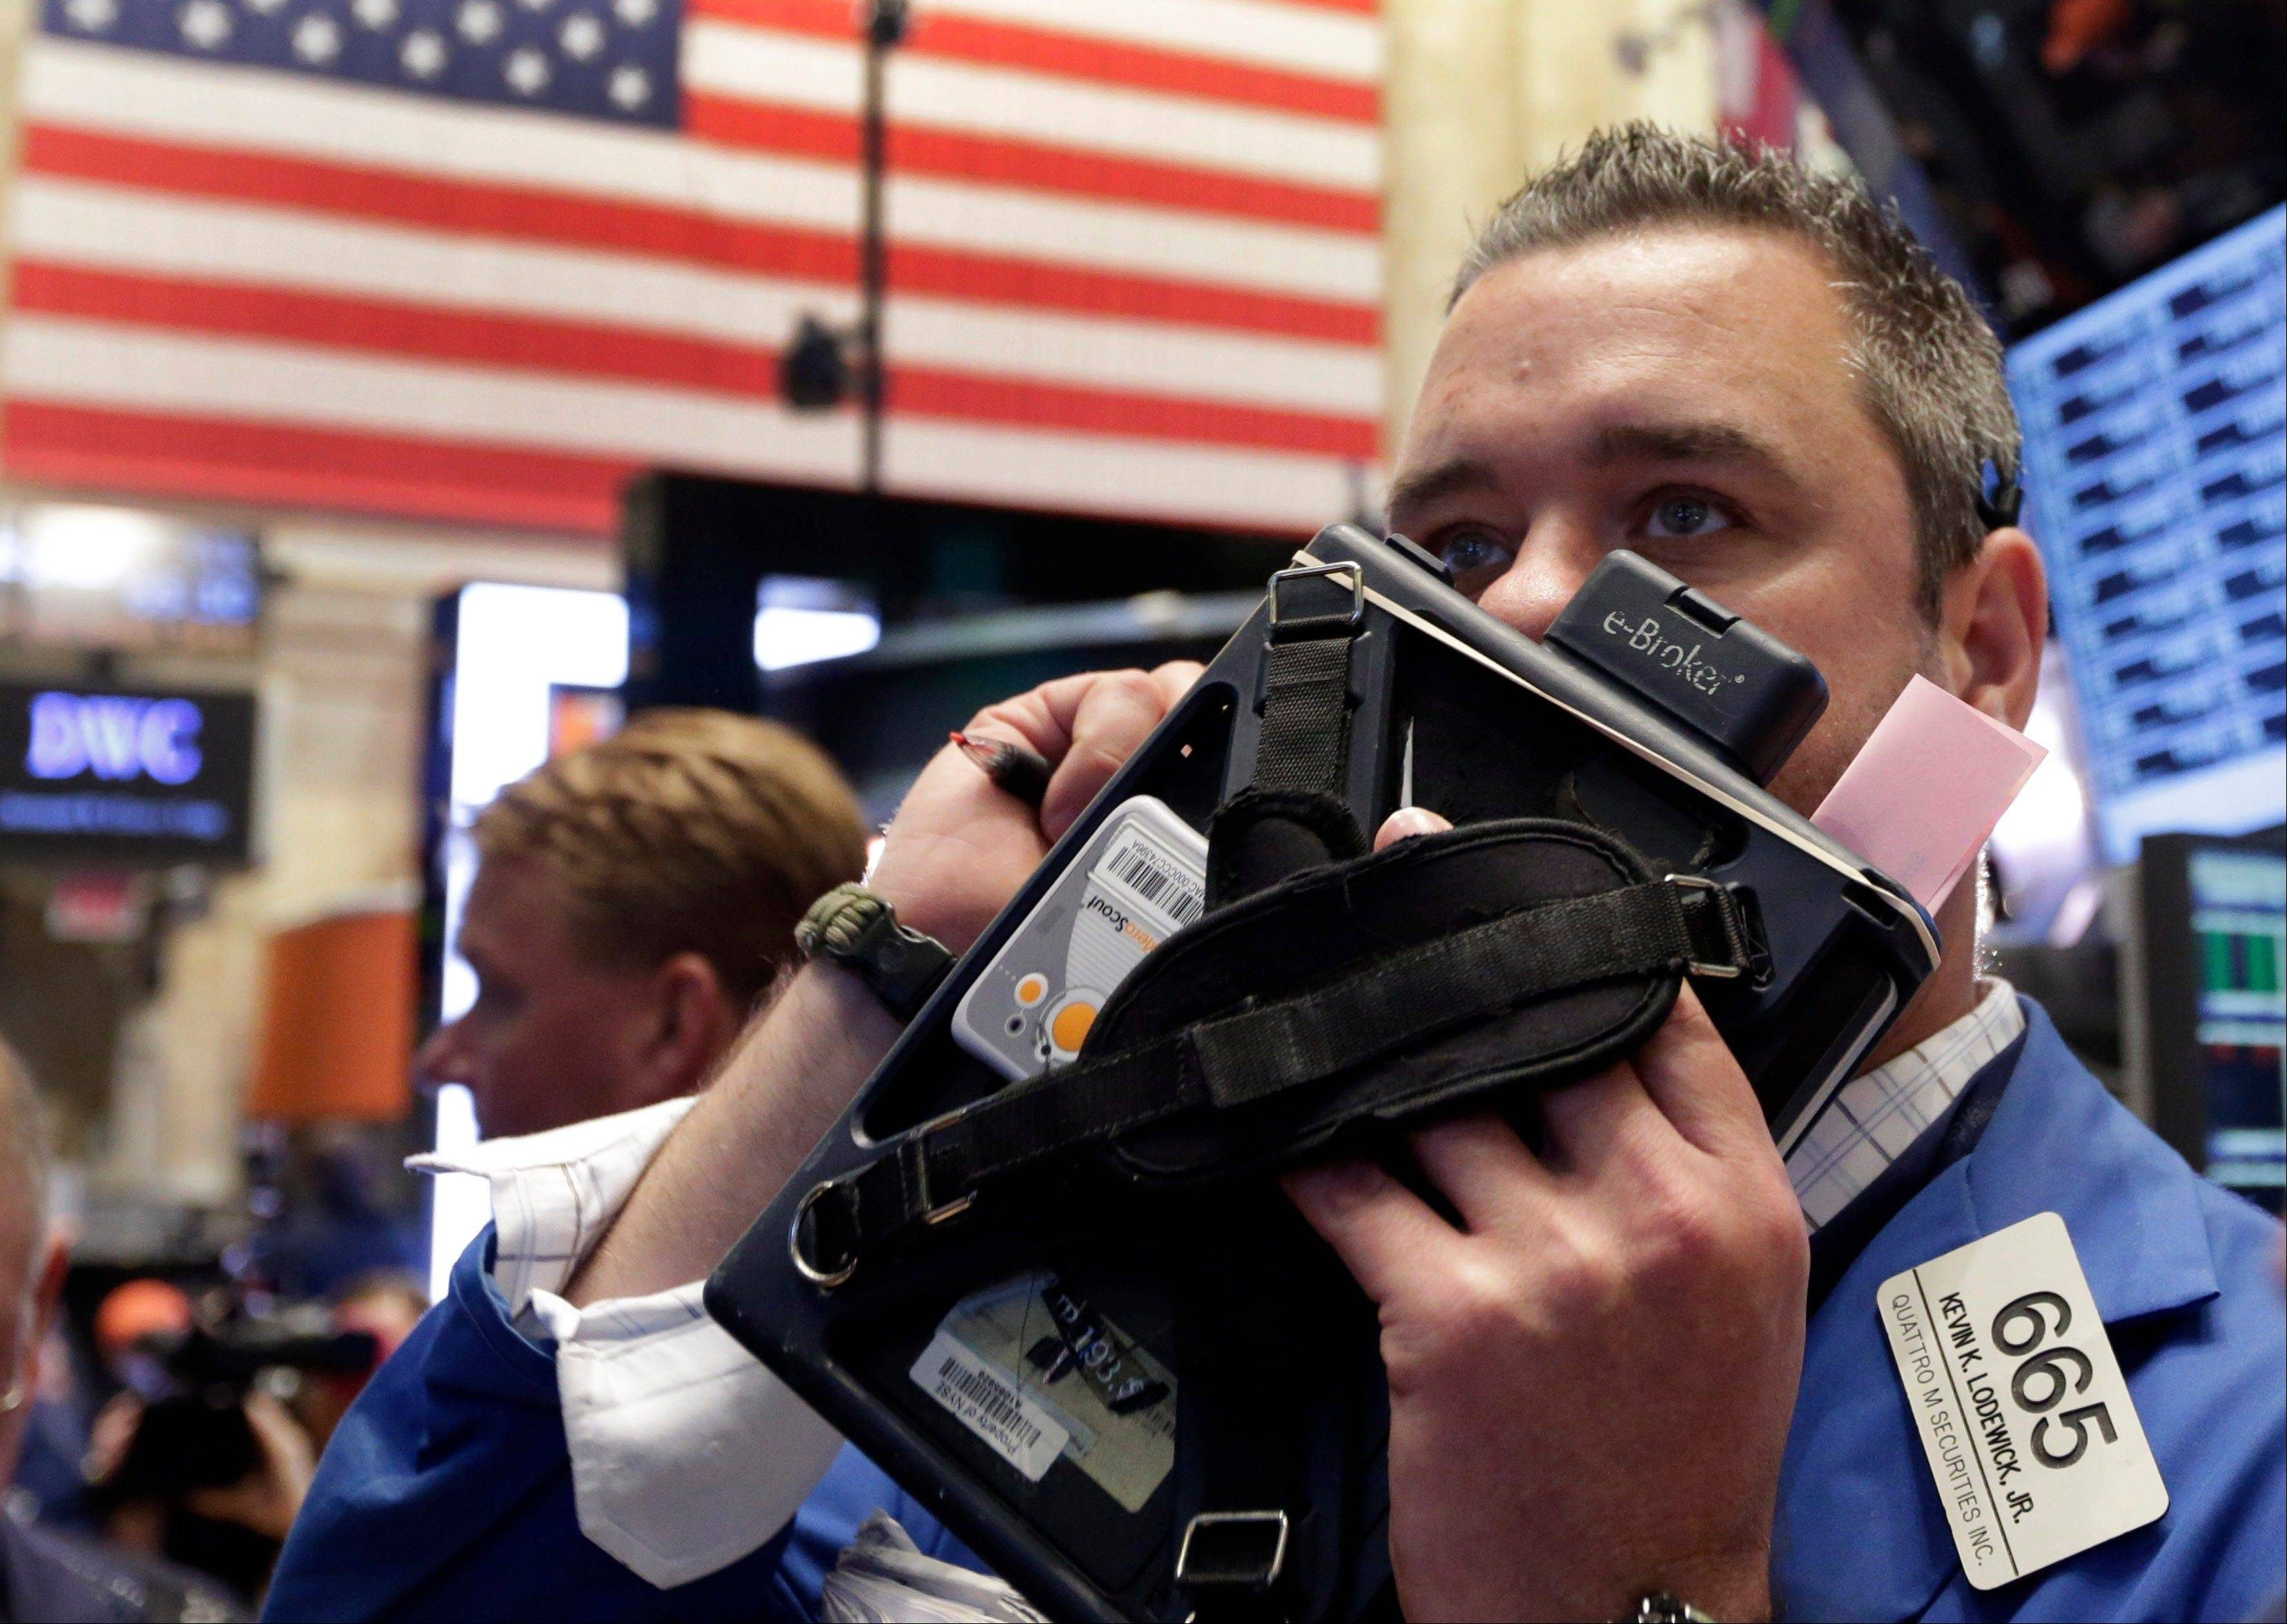 U.S. stocks rose, erasing Wednesday�s decline in the Standard & Poor�s 500 Index, as the European Central Bank cut its key interest rate and American jobless claims unexpectedly fell.